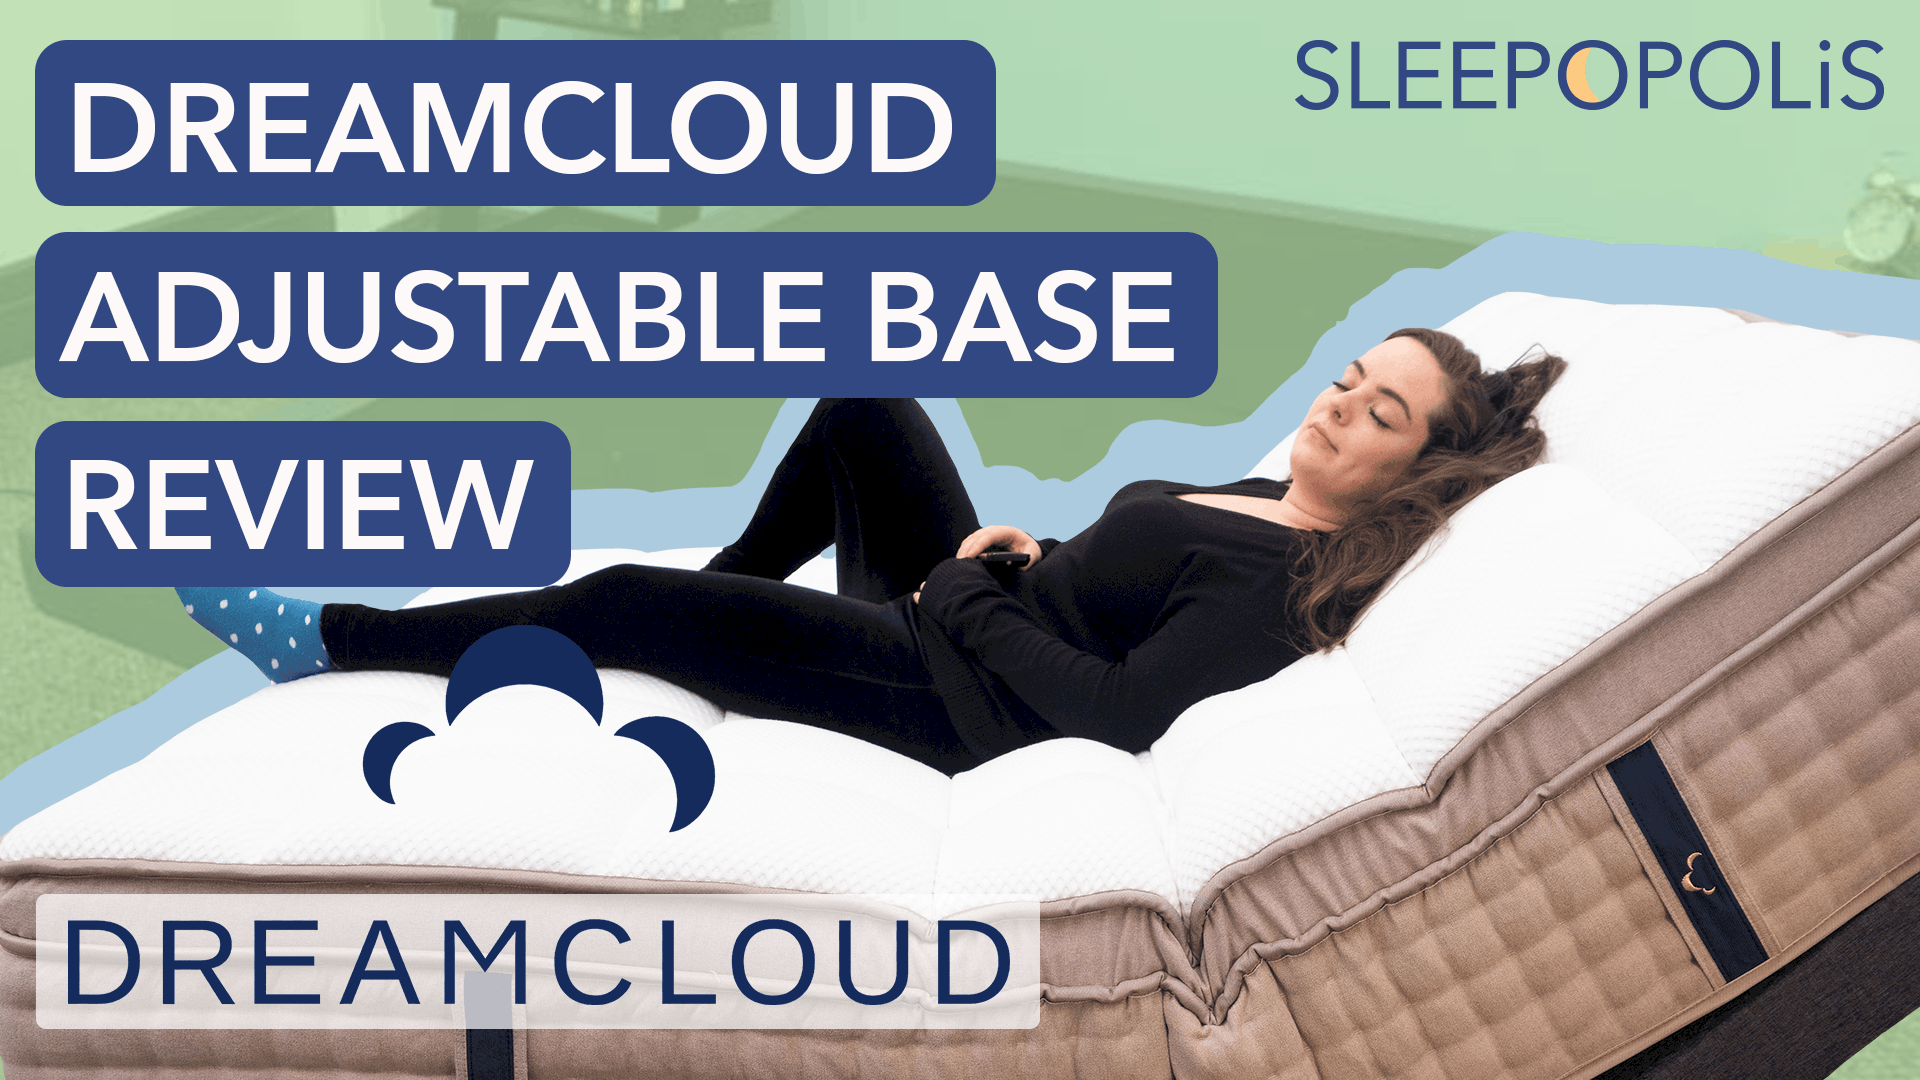 Dreamcloud Adjustable Base Review Sleepopolis